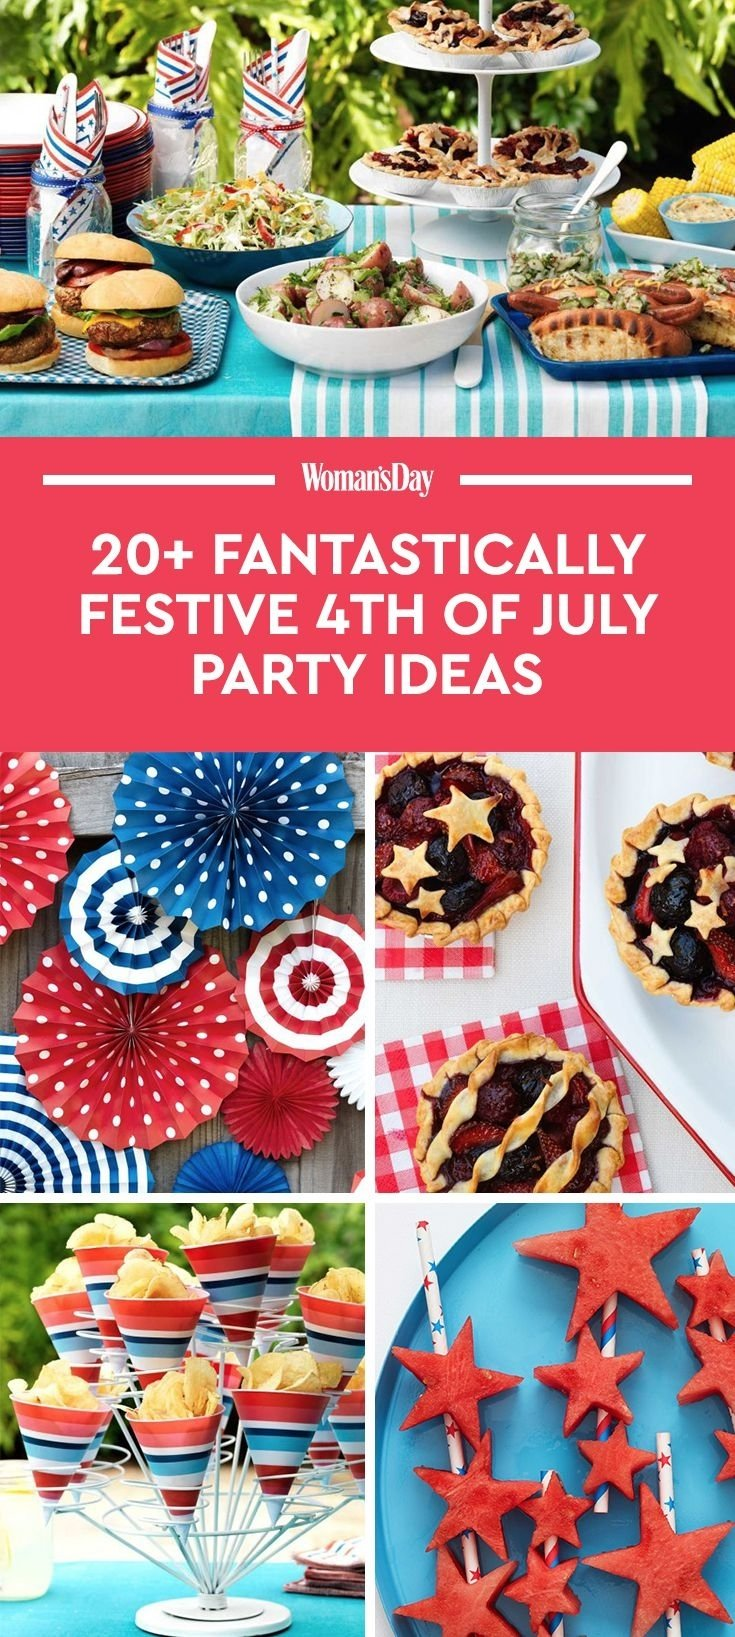 10 Ideal Fourth Of July Cookout Ideas 24 4th of july party ideas food decor for a fourth of july cookout 2 2020